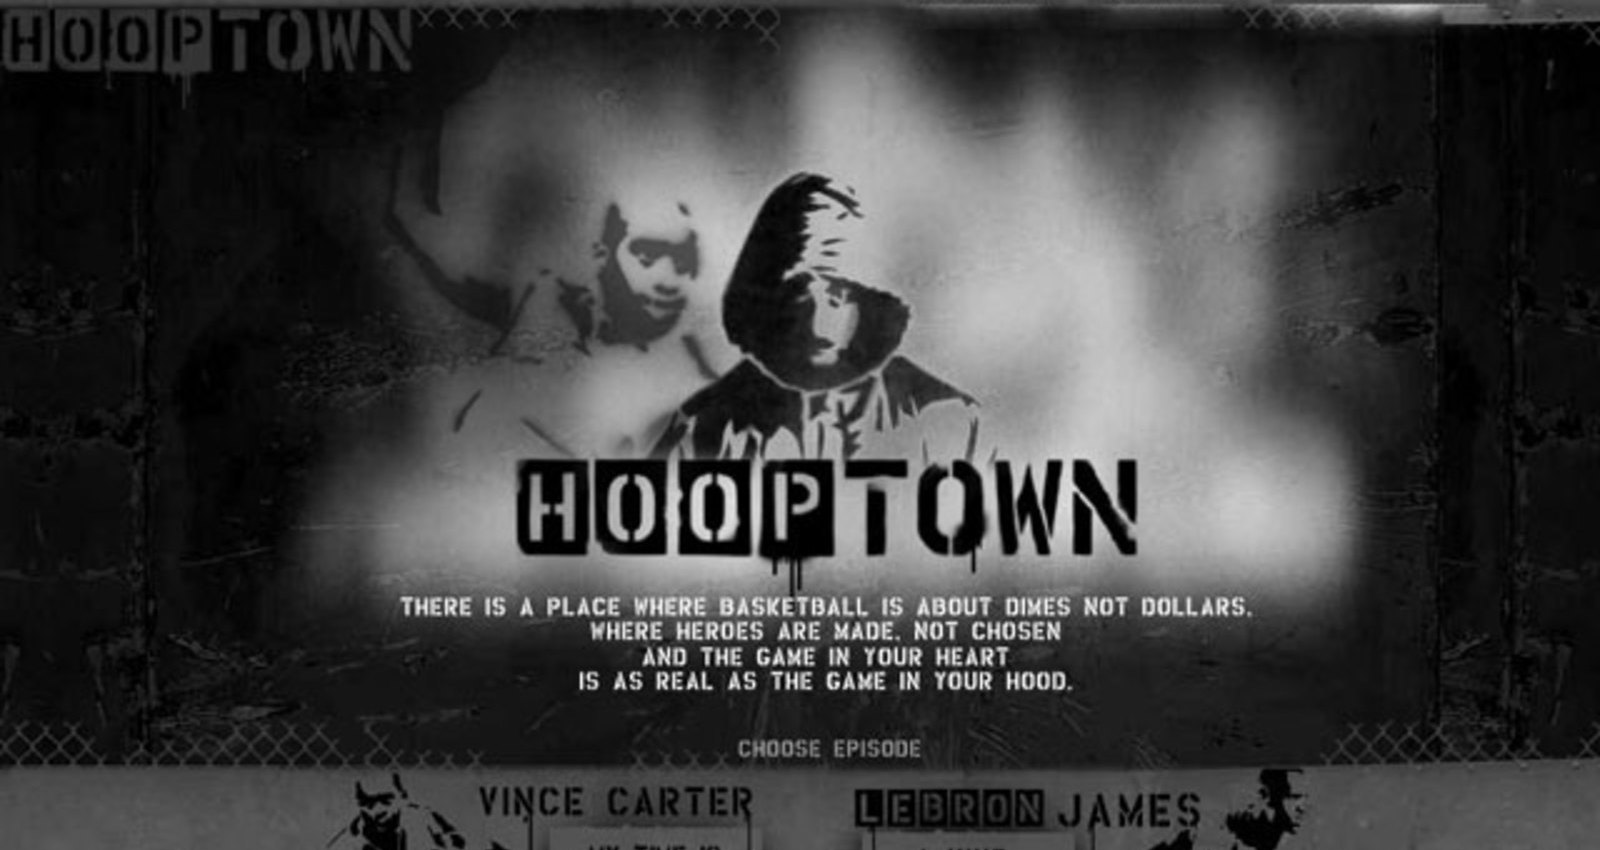 Hooptown